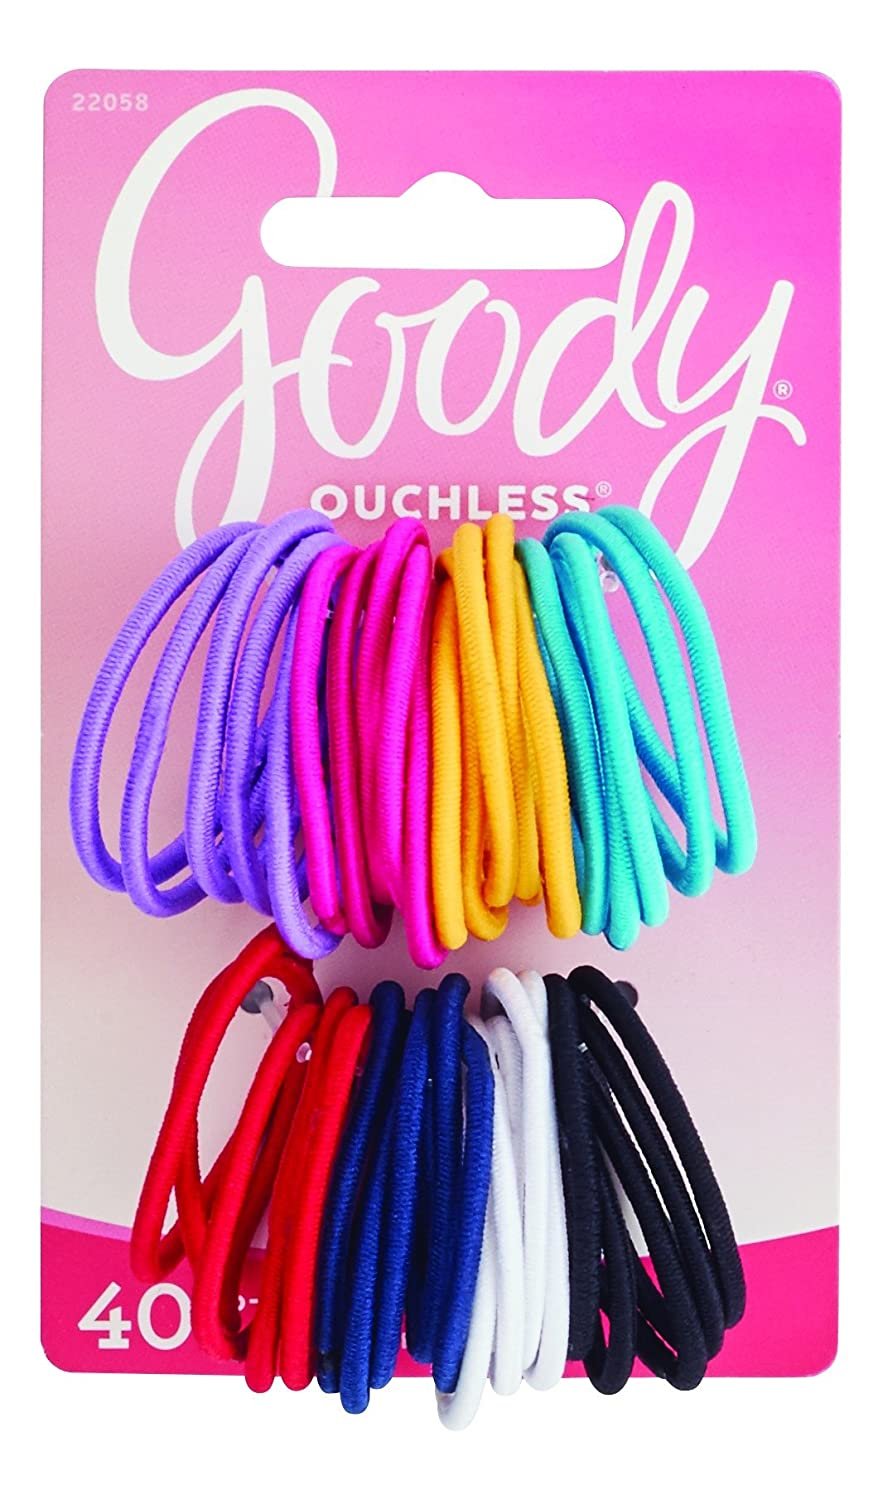 Goody Ouchless Medium Hair Elastics 2mm, 40 Count (Assorted colors) 22058